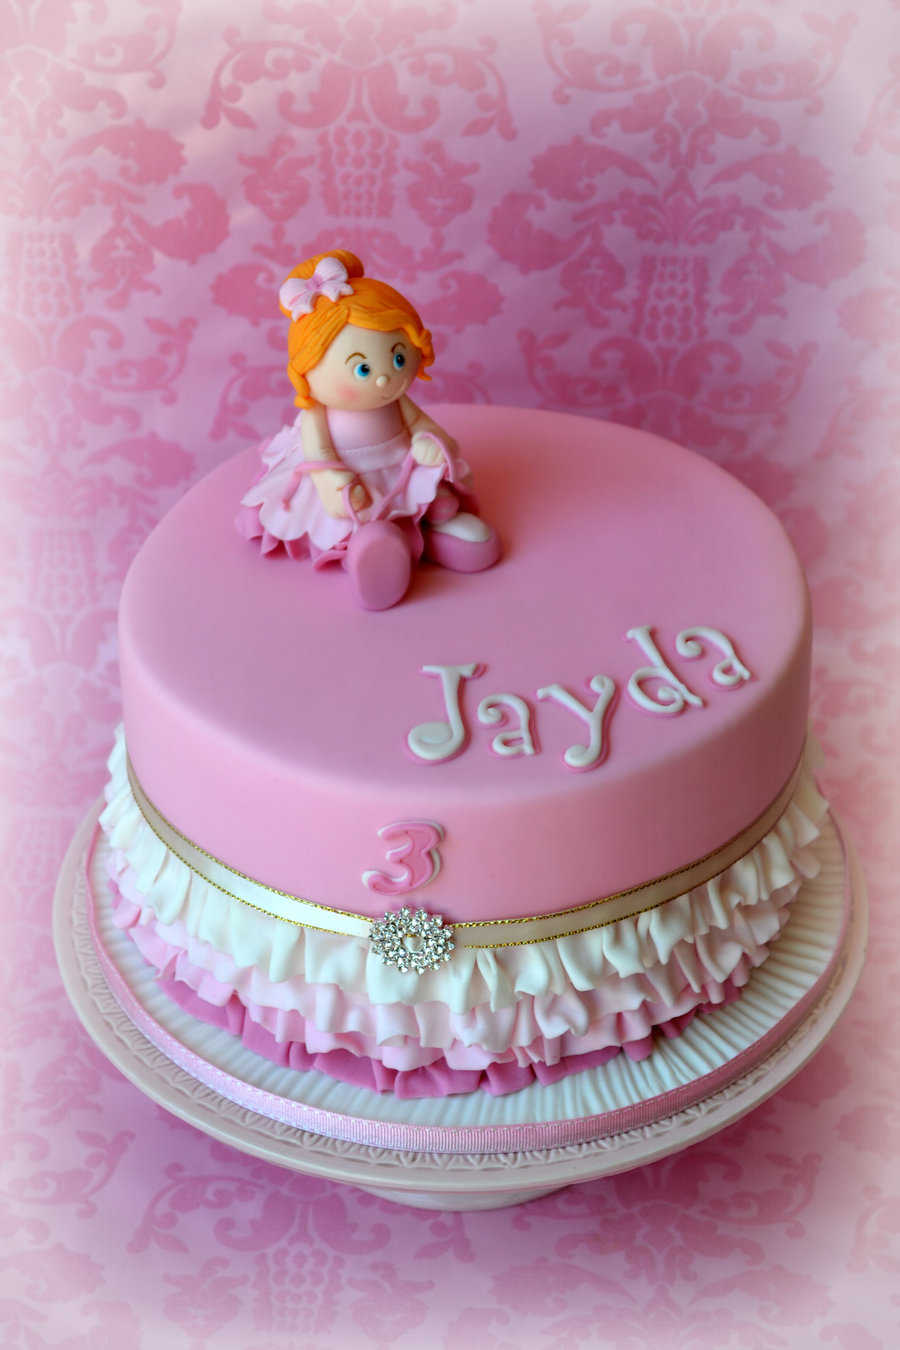 Birthday Cake For A Little Girl Who Loves To Dance The Only Request